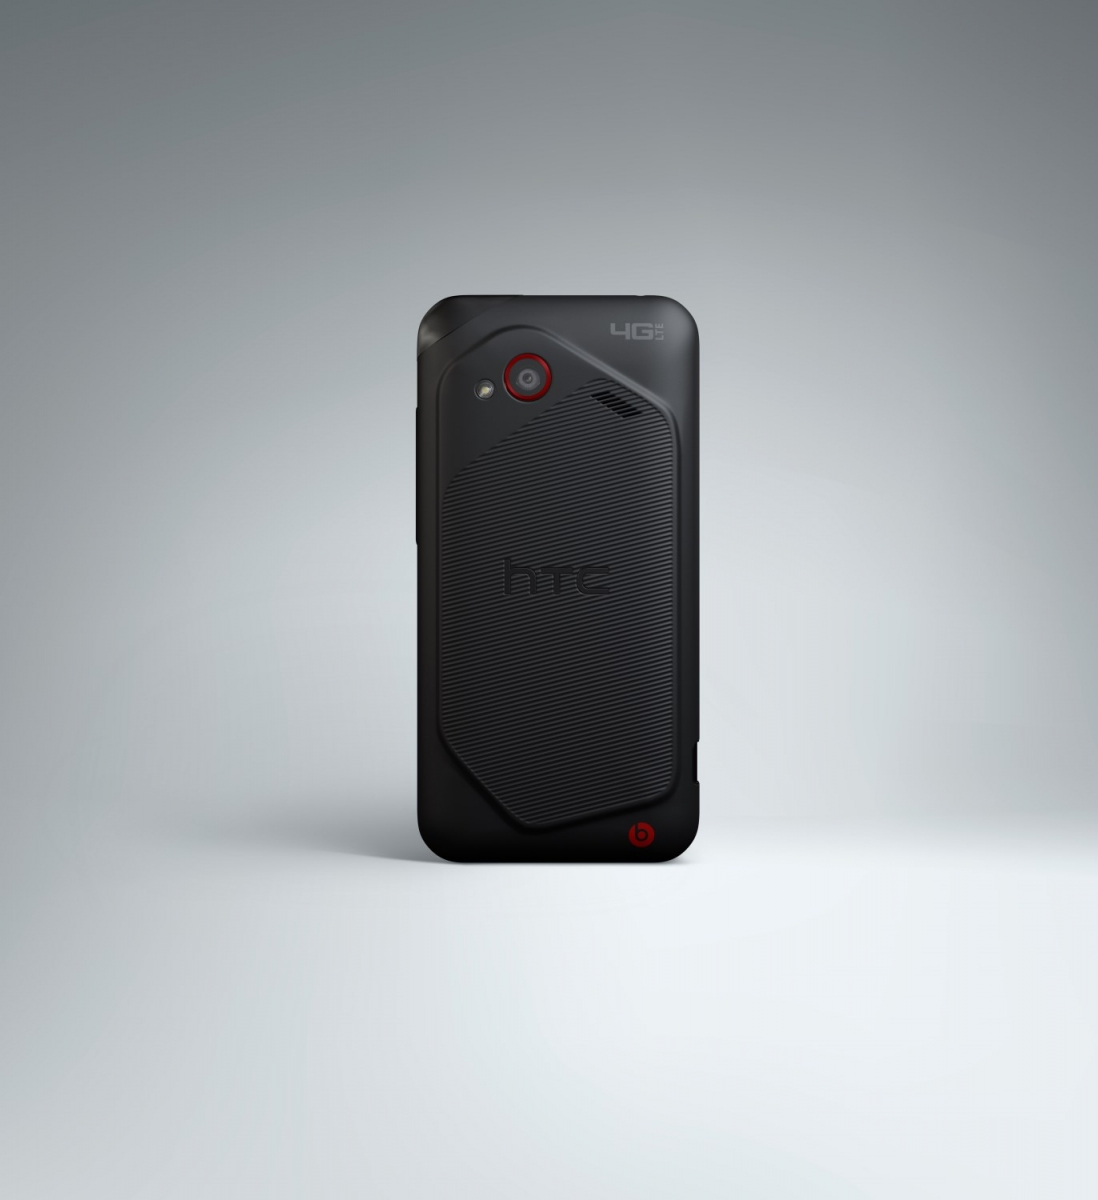 HTC DROID Incredible 4G LTE - alt smartphone ce promite viteze mari de transfer